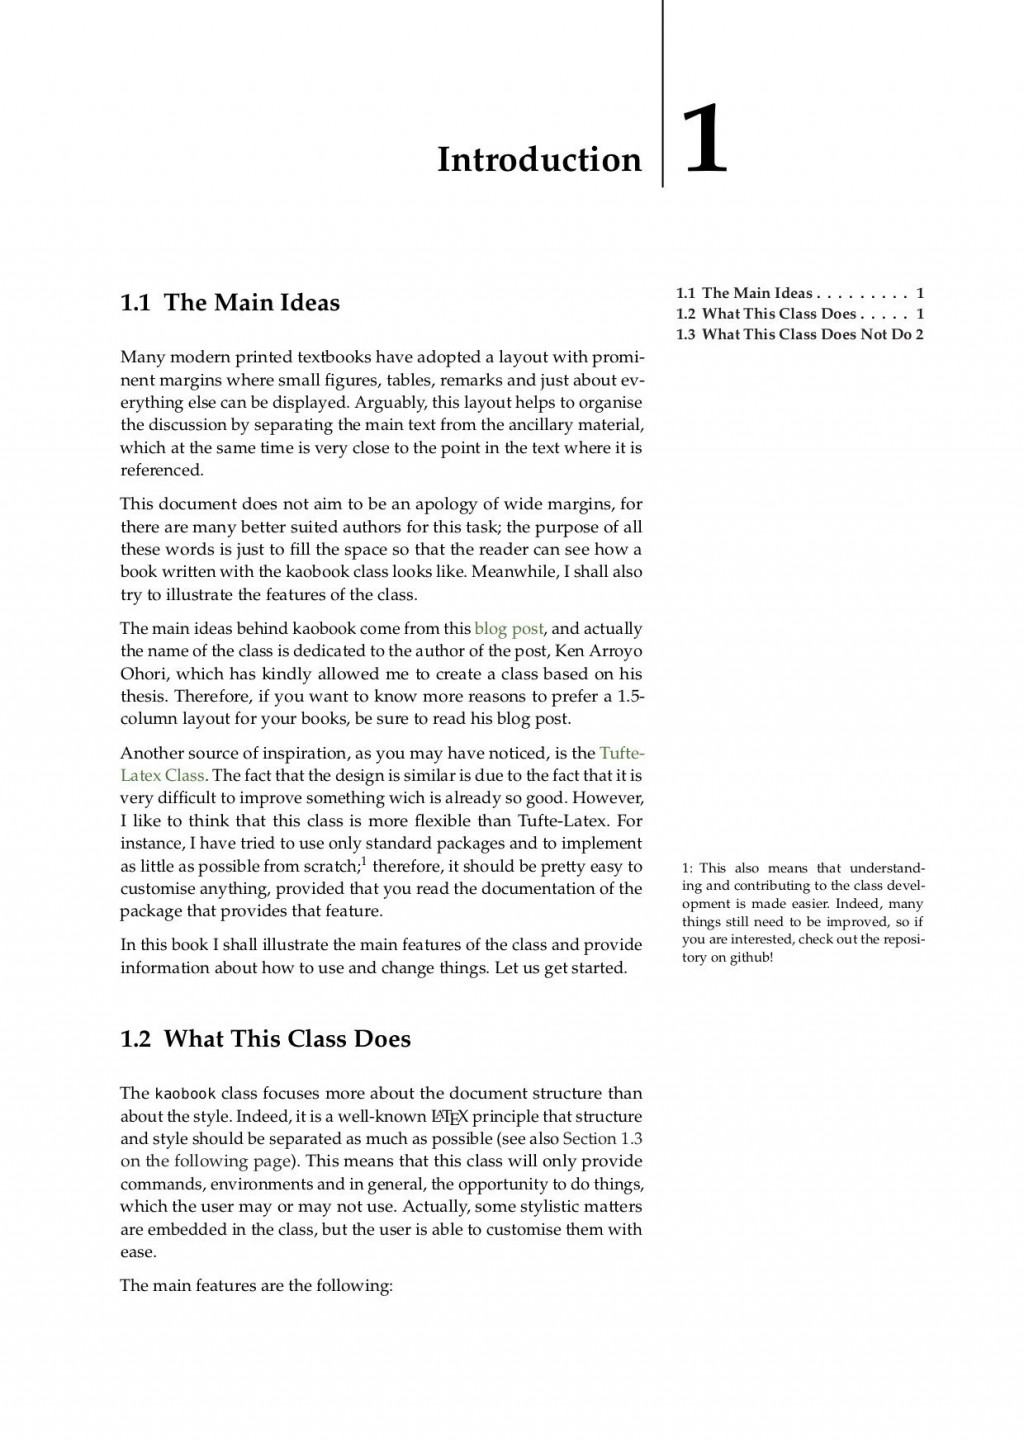 003 Marvelou Nonfiction Book Proposal Template Sample  ExampleLarge